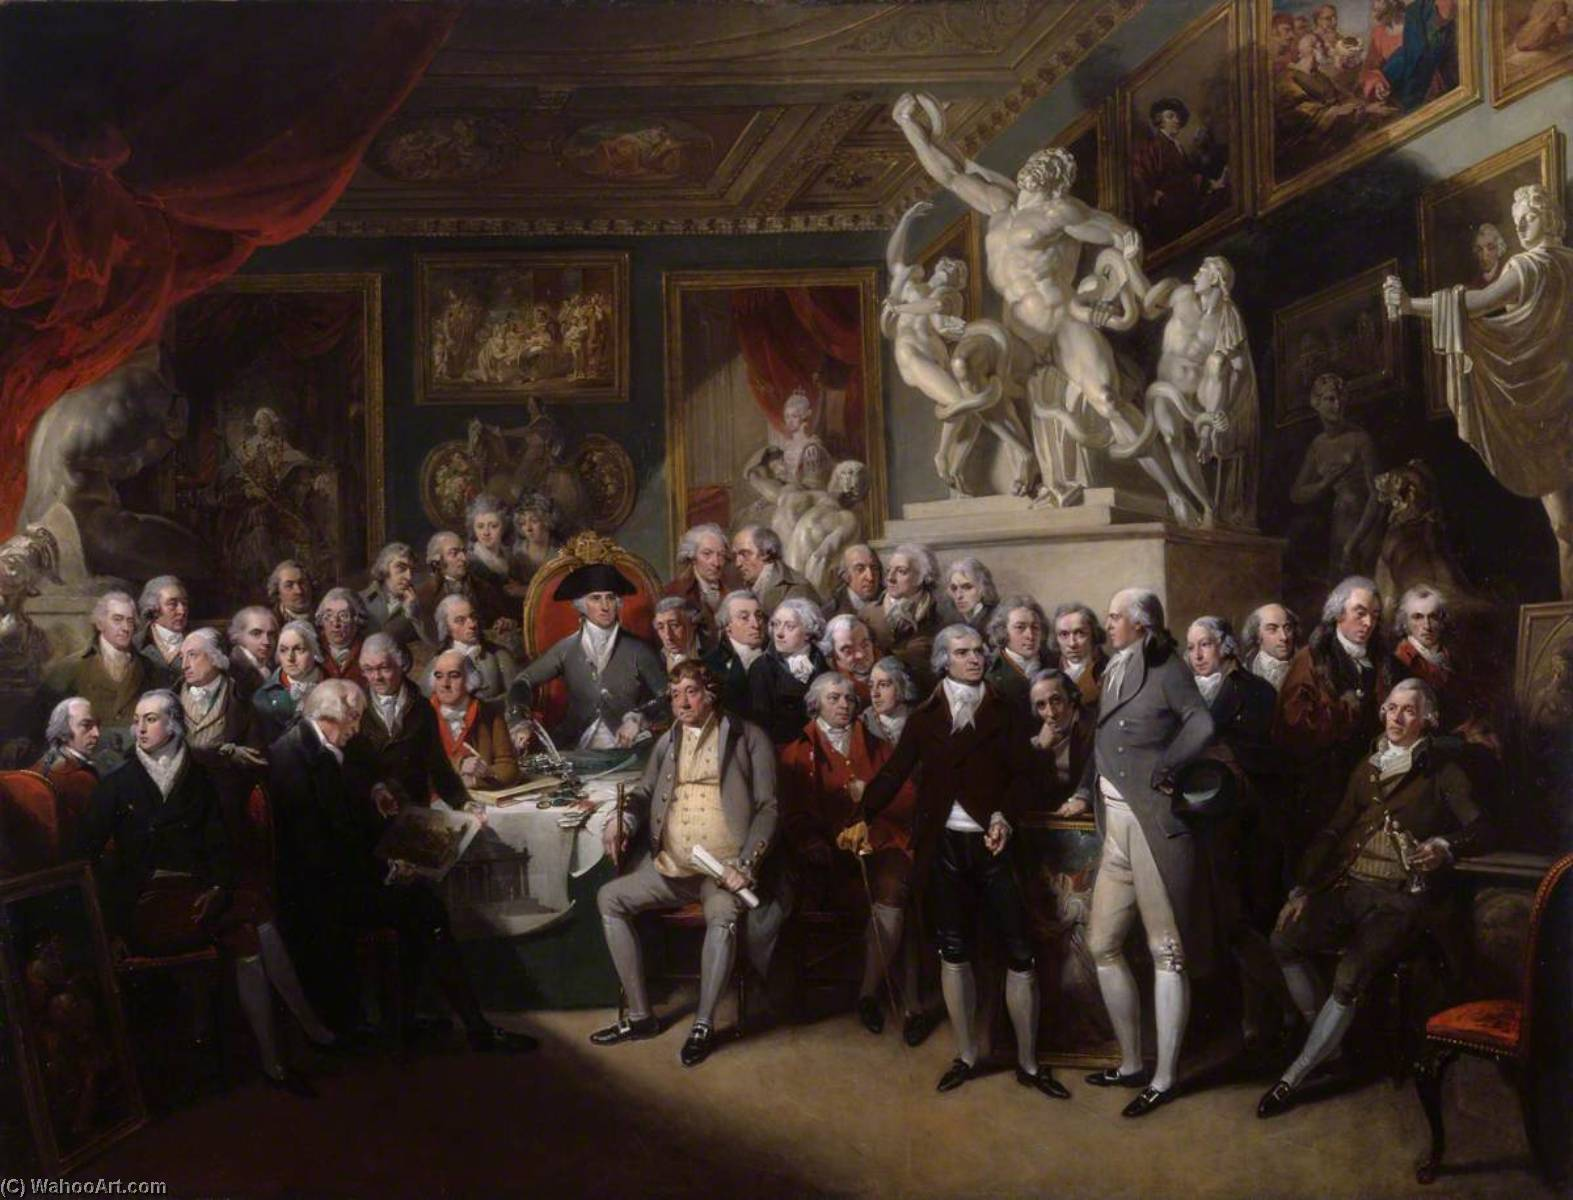 The Royal Academicians in General Assembly, 1795 by Henry Singleton (1766-1839, United States) | Famous Paintings Reproductions | WahooArt.com